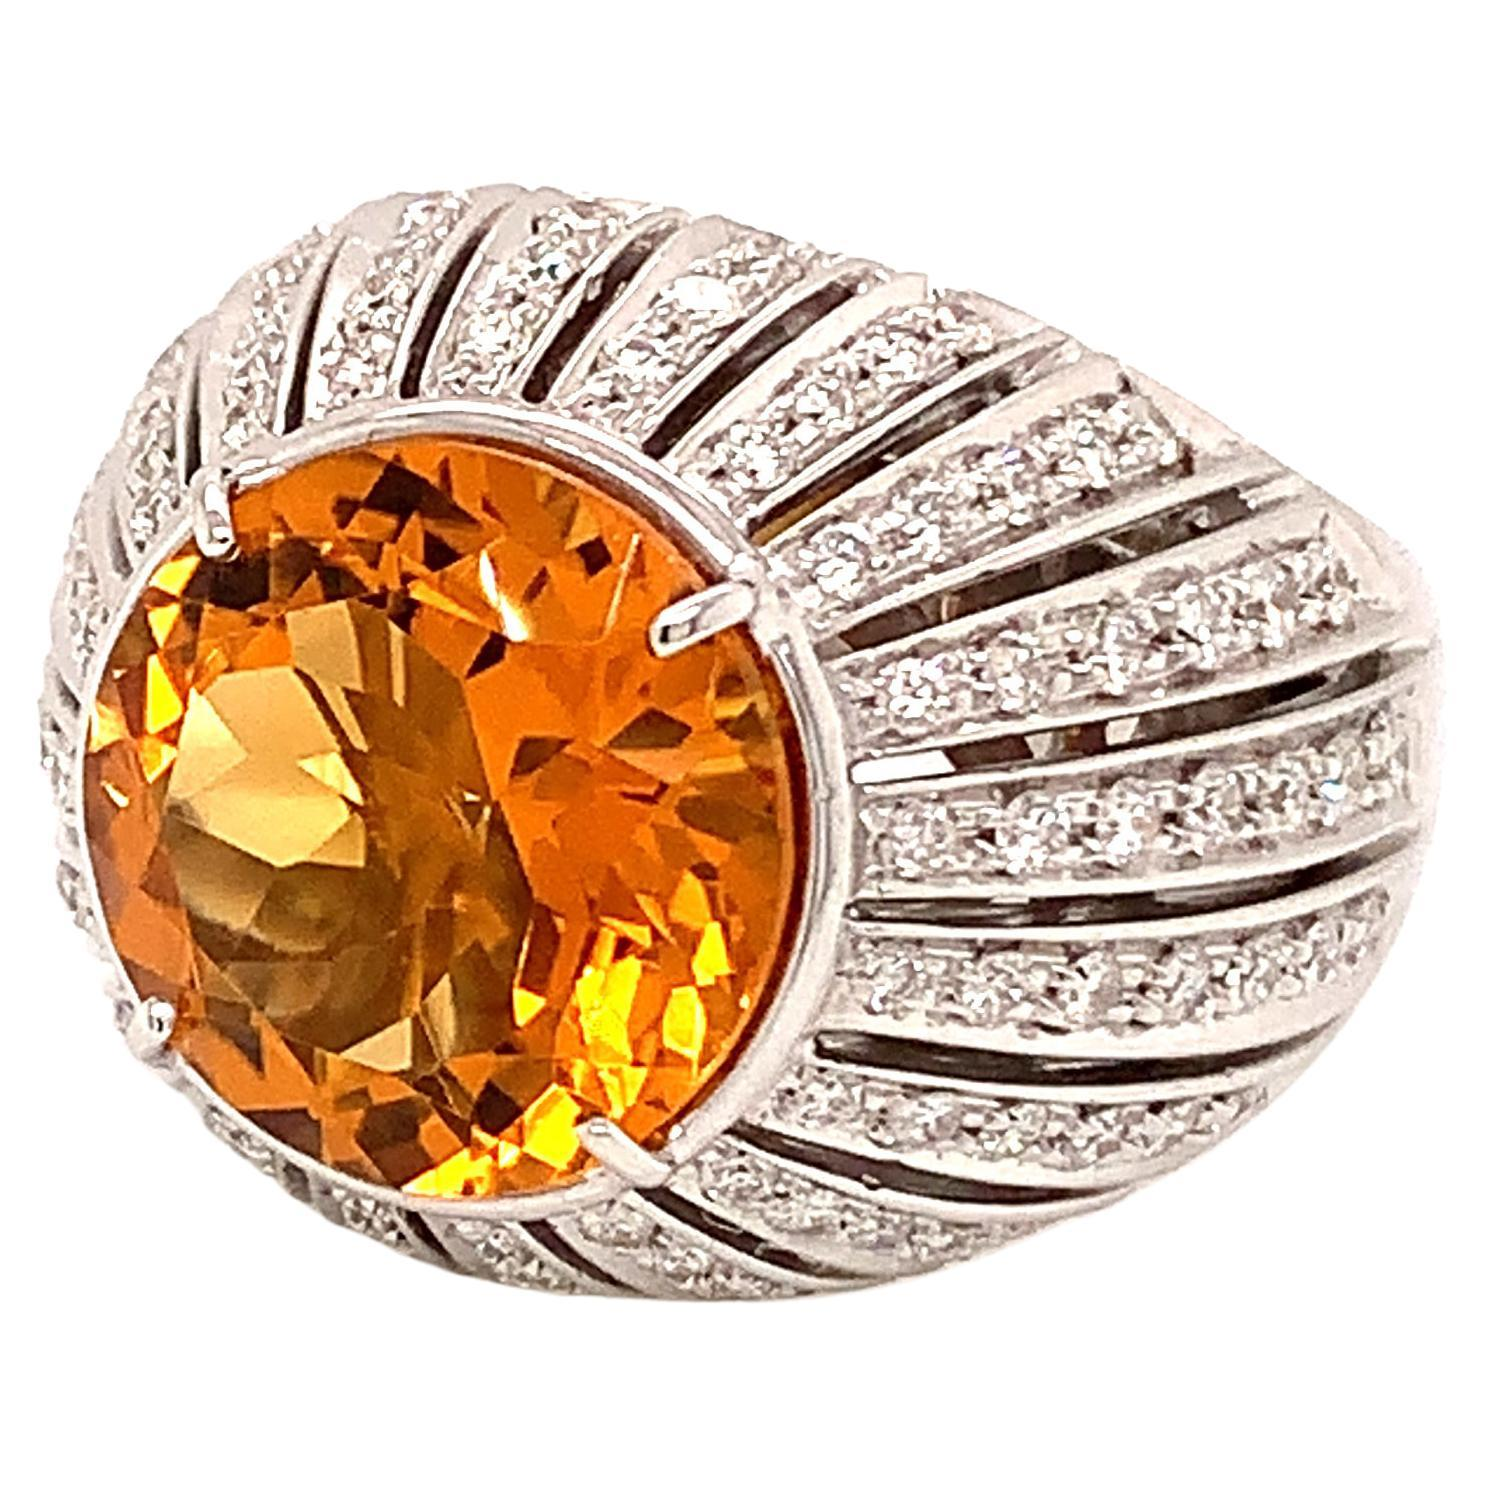 18kt White Gold One of a Kind Ring with 5 Ct Citrine and Diamonds